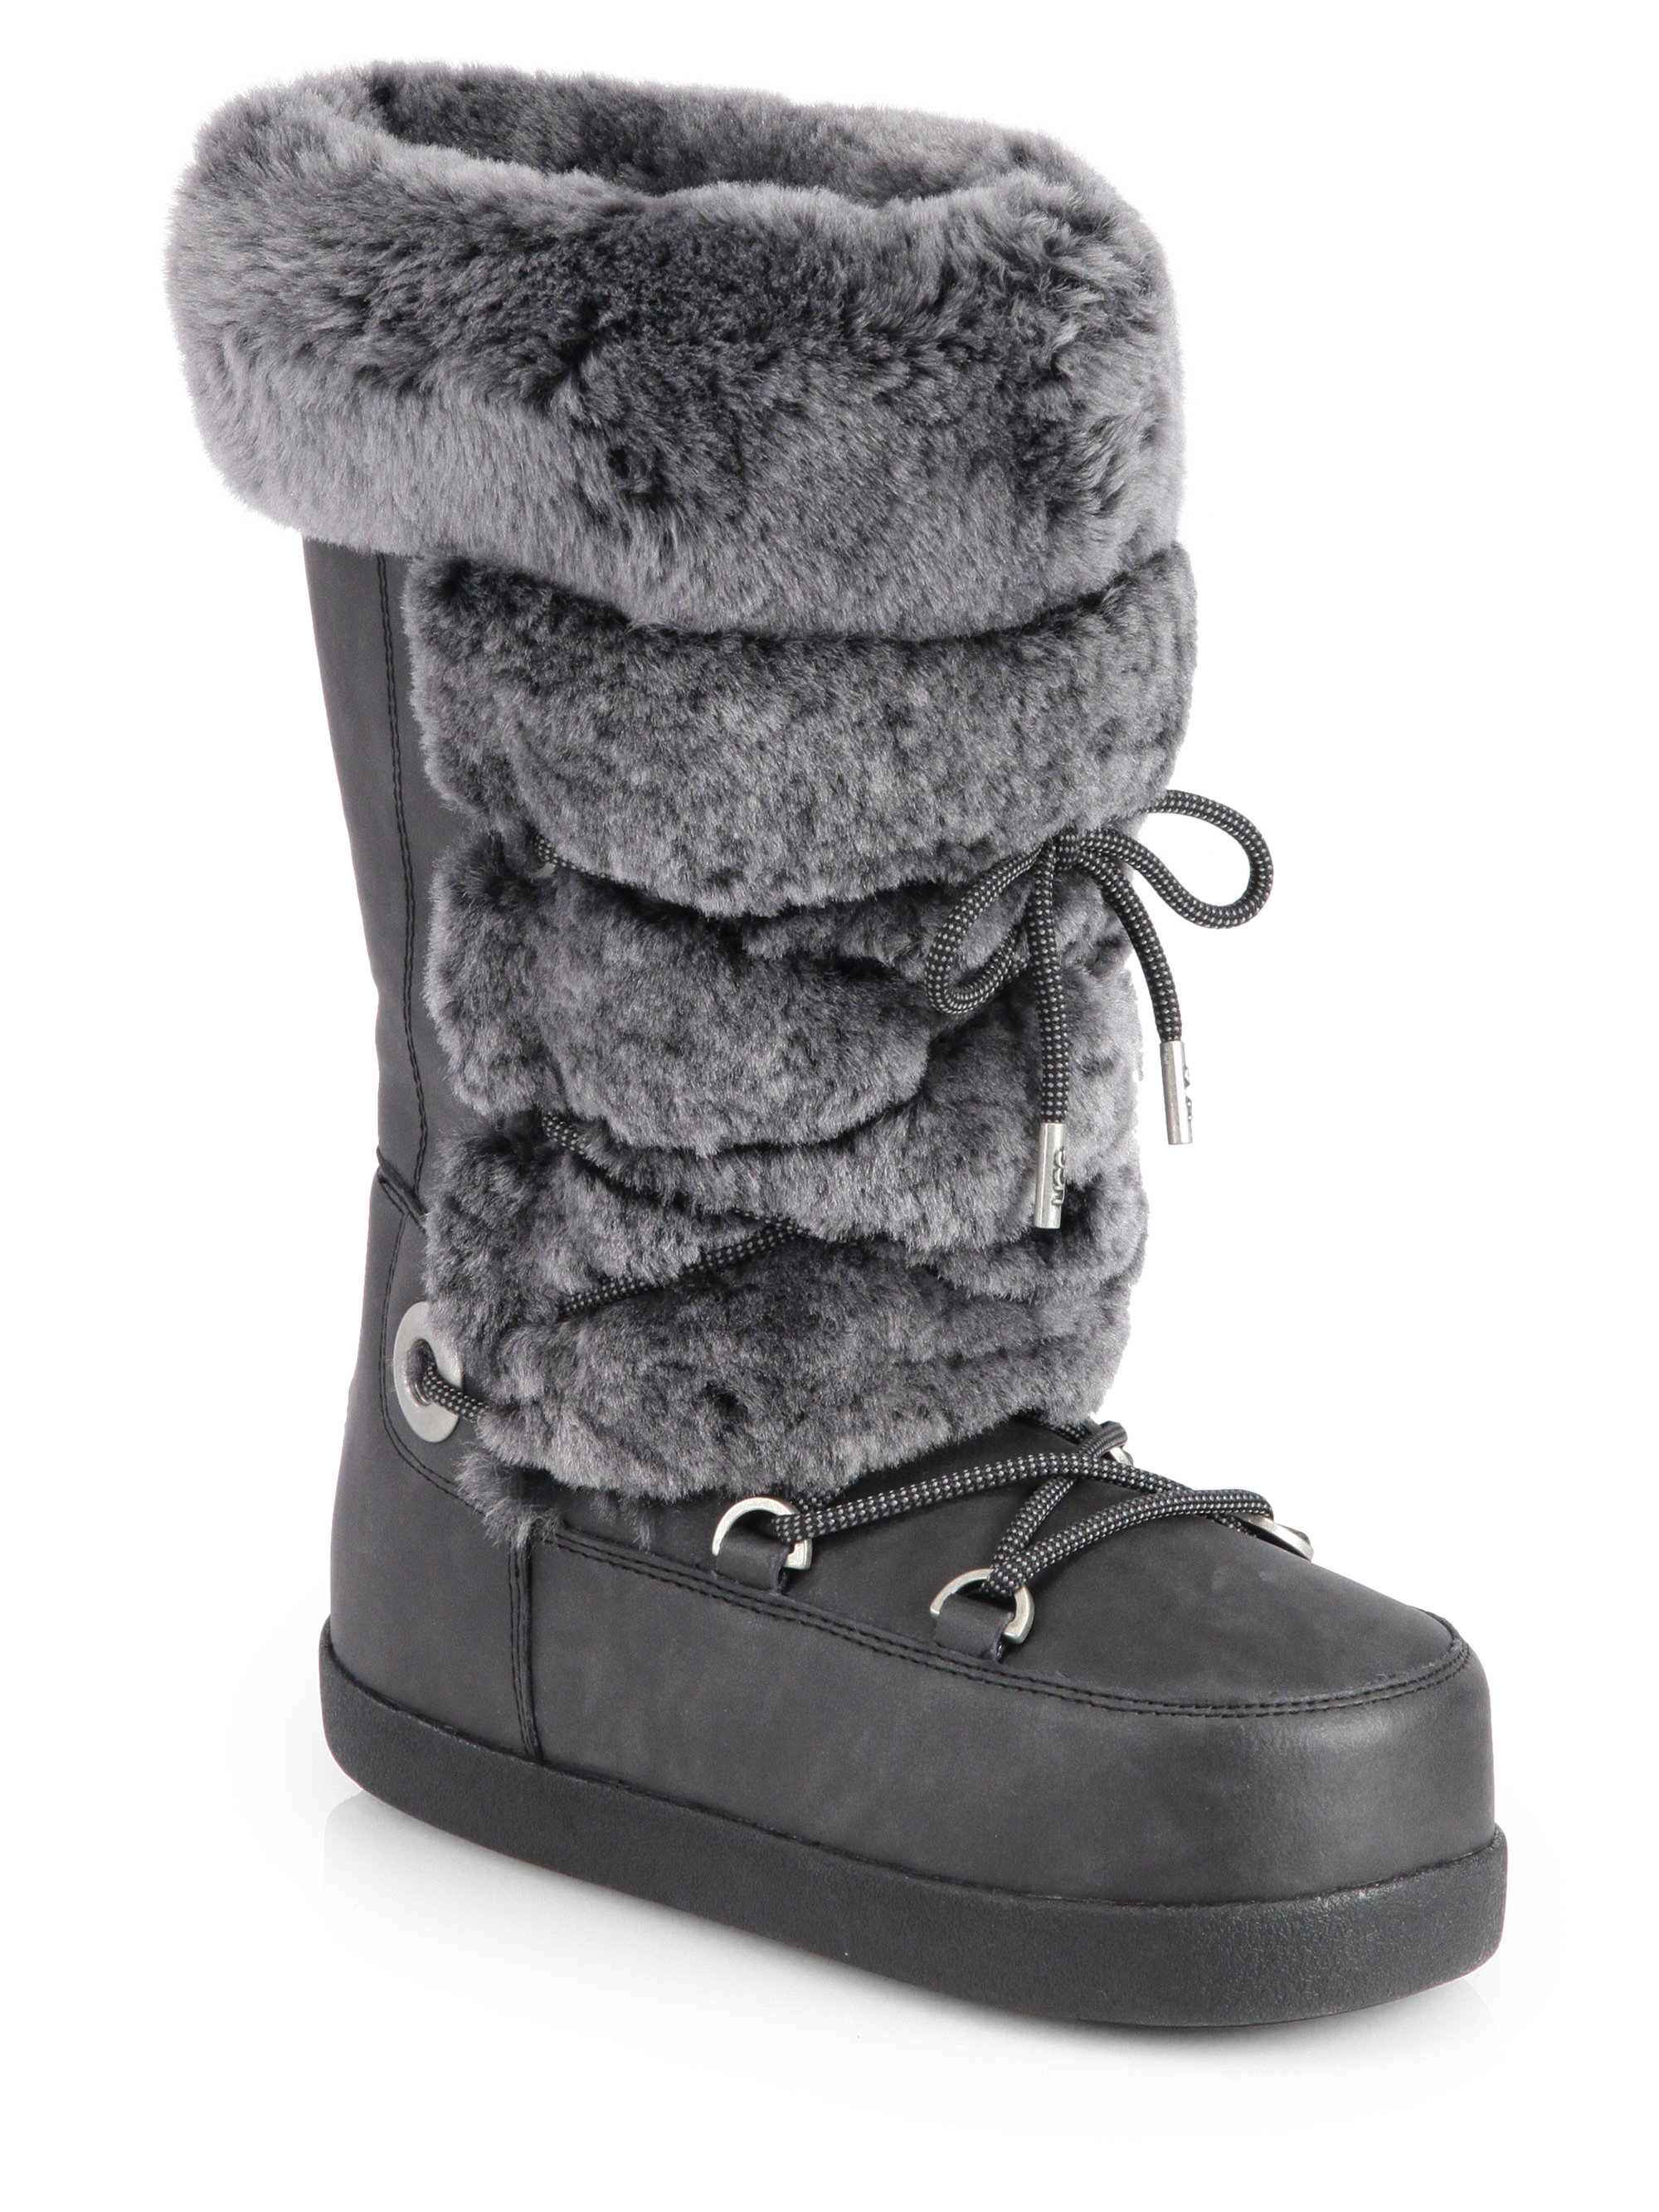 Lyst Ugg Julette Shearling Leather Moon Boots In Black